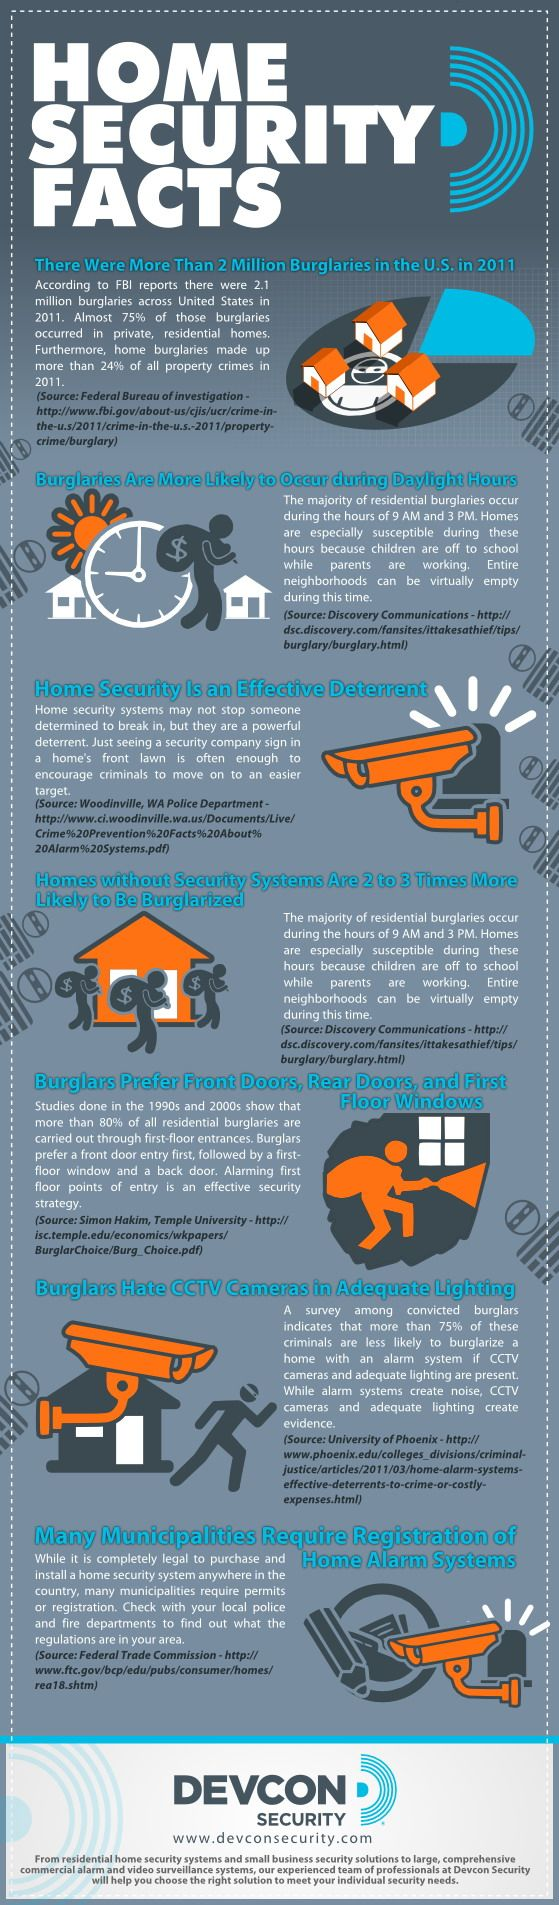 Test your smarts when it comes to safety and #HomeSecurity. Is your home properly protected against #crime? #StaySafe #ADT #AlwaysThere